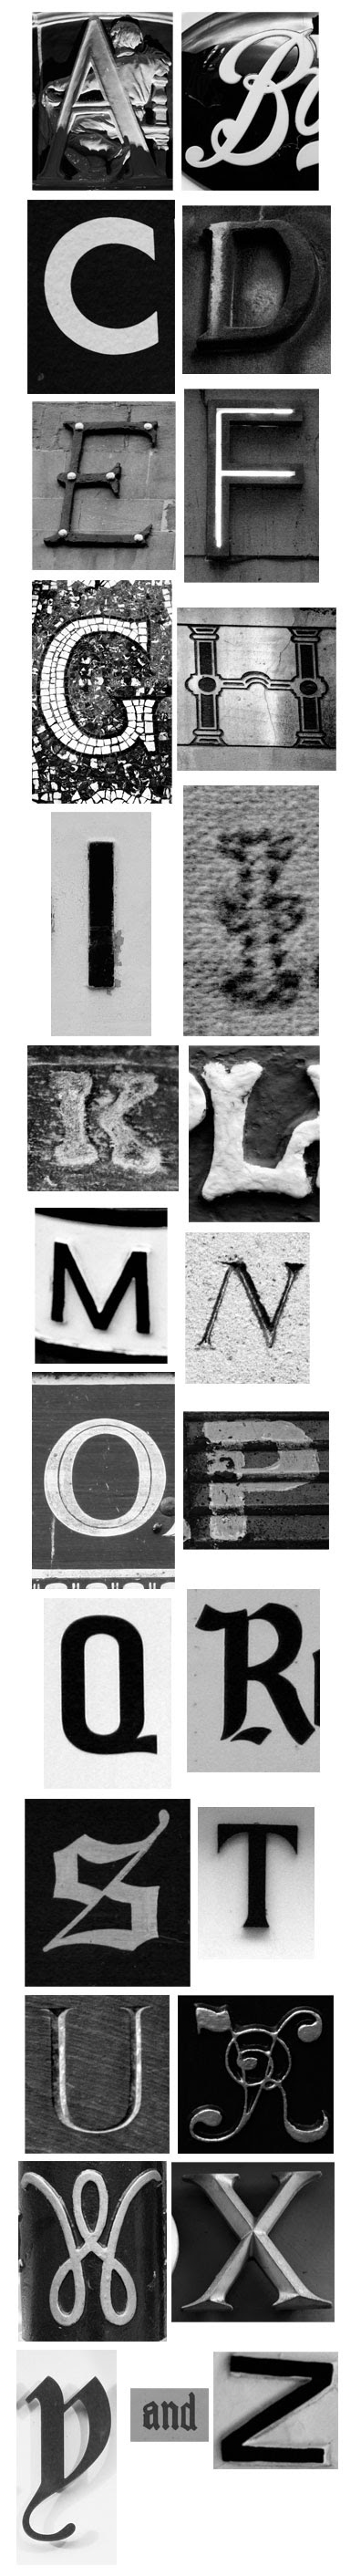 London and Windsor Alphabet